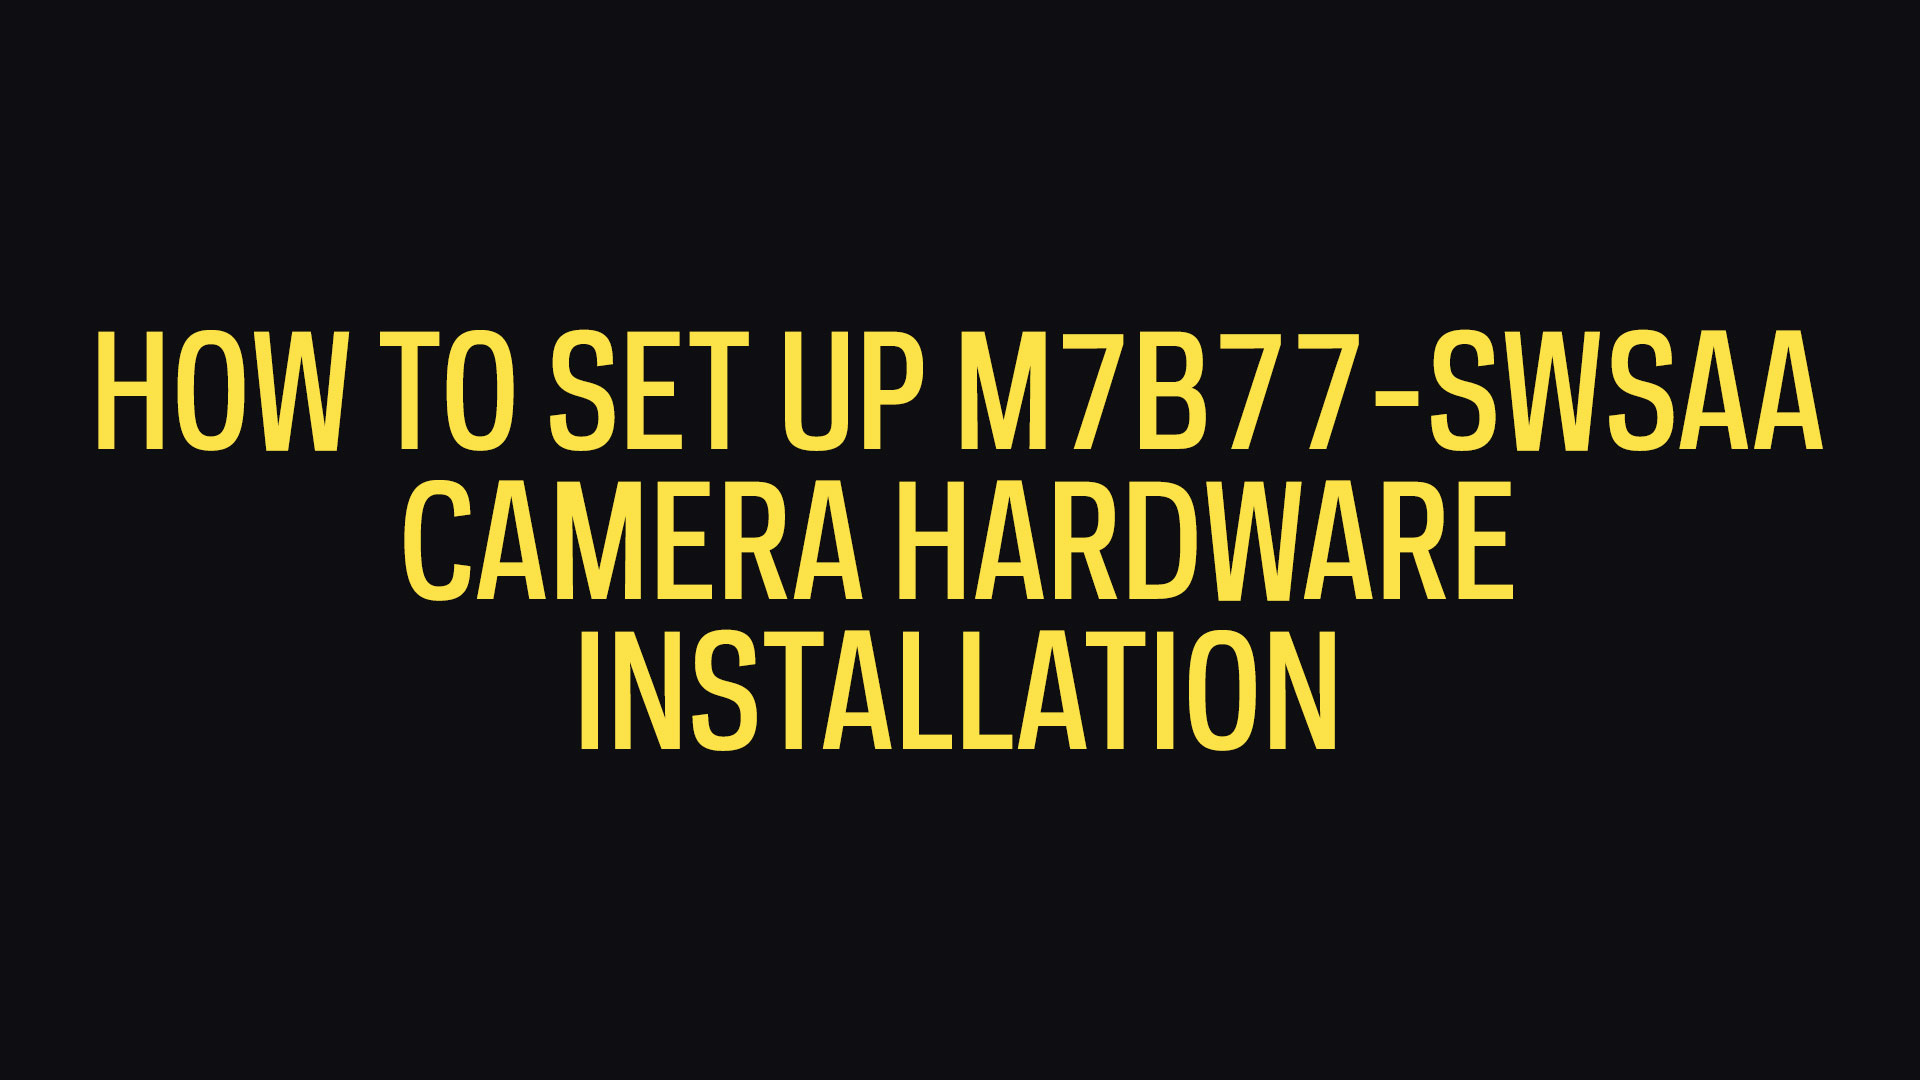 How To Set Up M7B77-SWSAA 170º Wide Angle Microseven Security Camera Hardware Installation